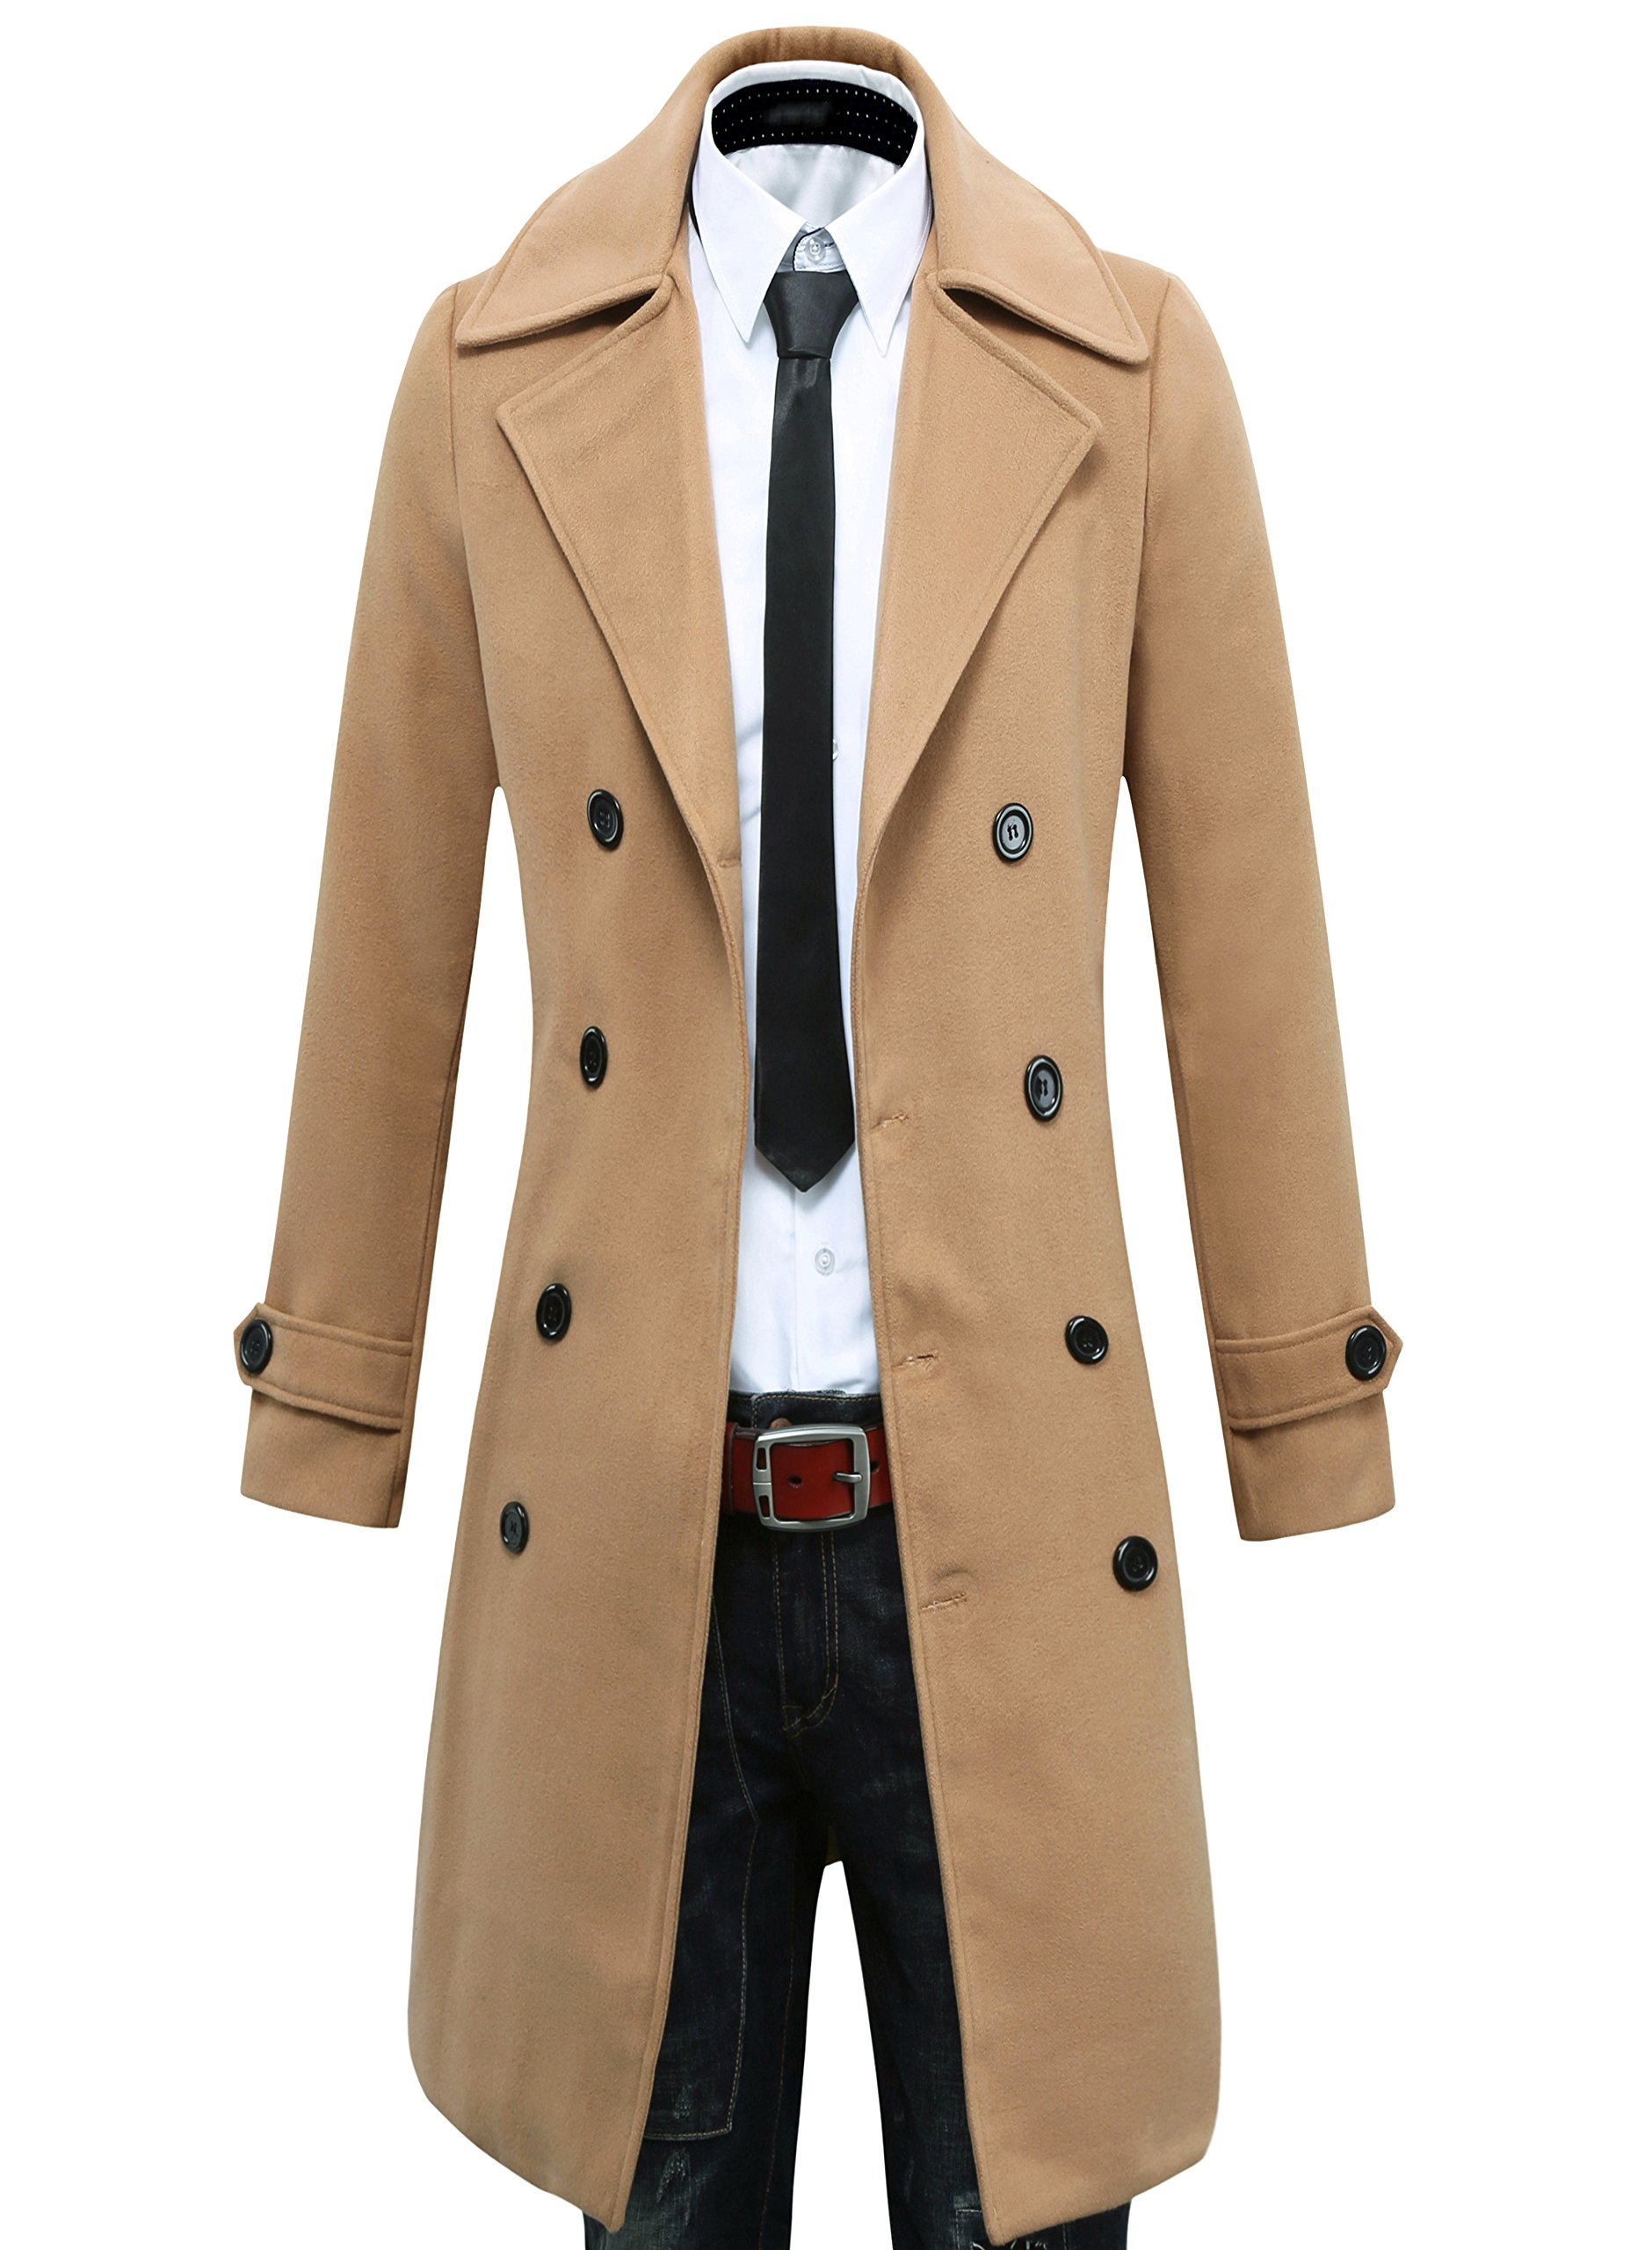 Benibos Men's Trench Coat Winter Long Jacket Double Breasted Overcoat (US:M/Asia XL, 5625Camel) by Benibos